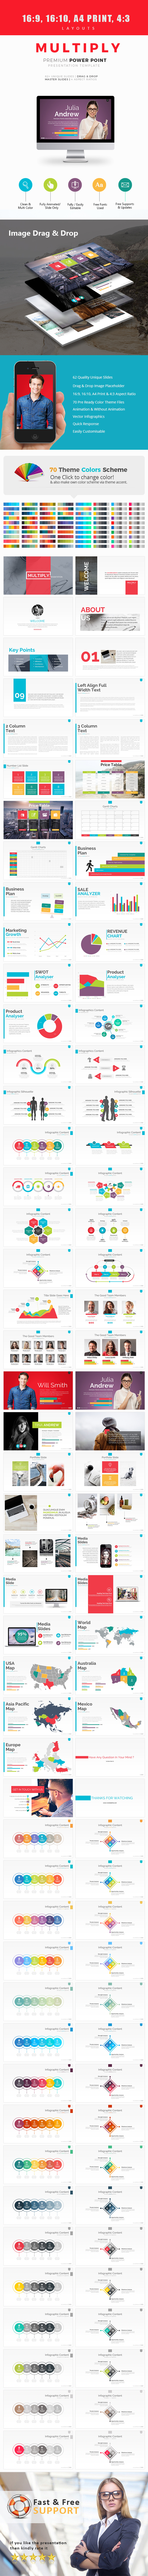 Multiply Premium Power Point Template - Creative PowerPoint Templates